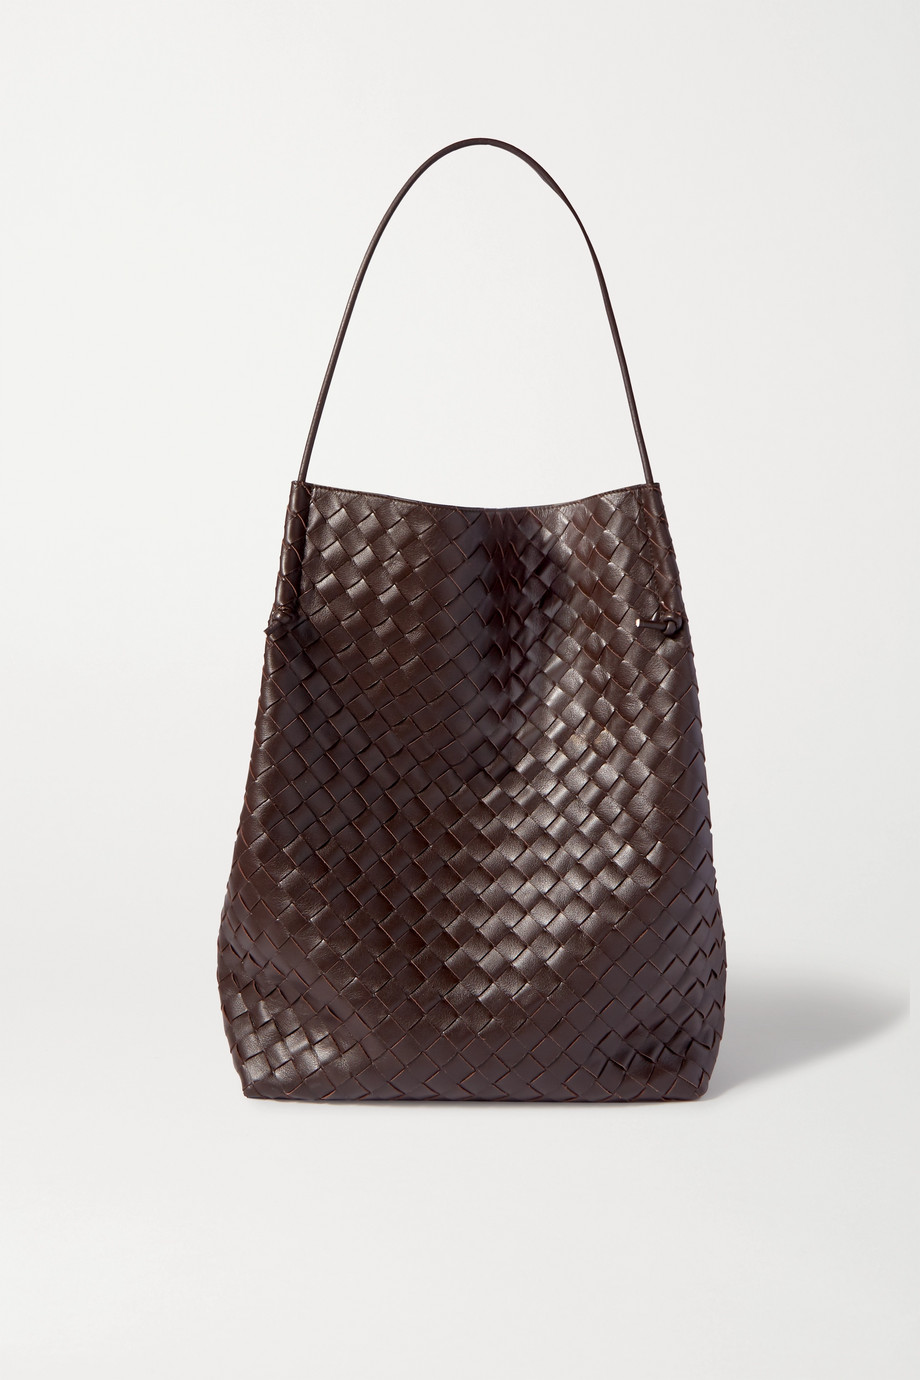 Bottega Veneta Knot medium intrecciato leather tote